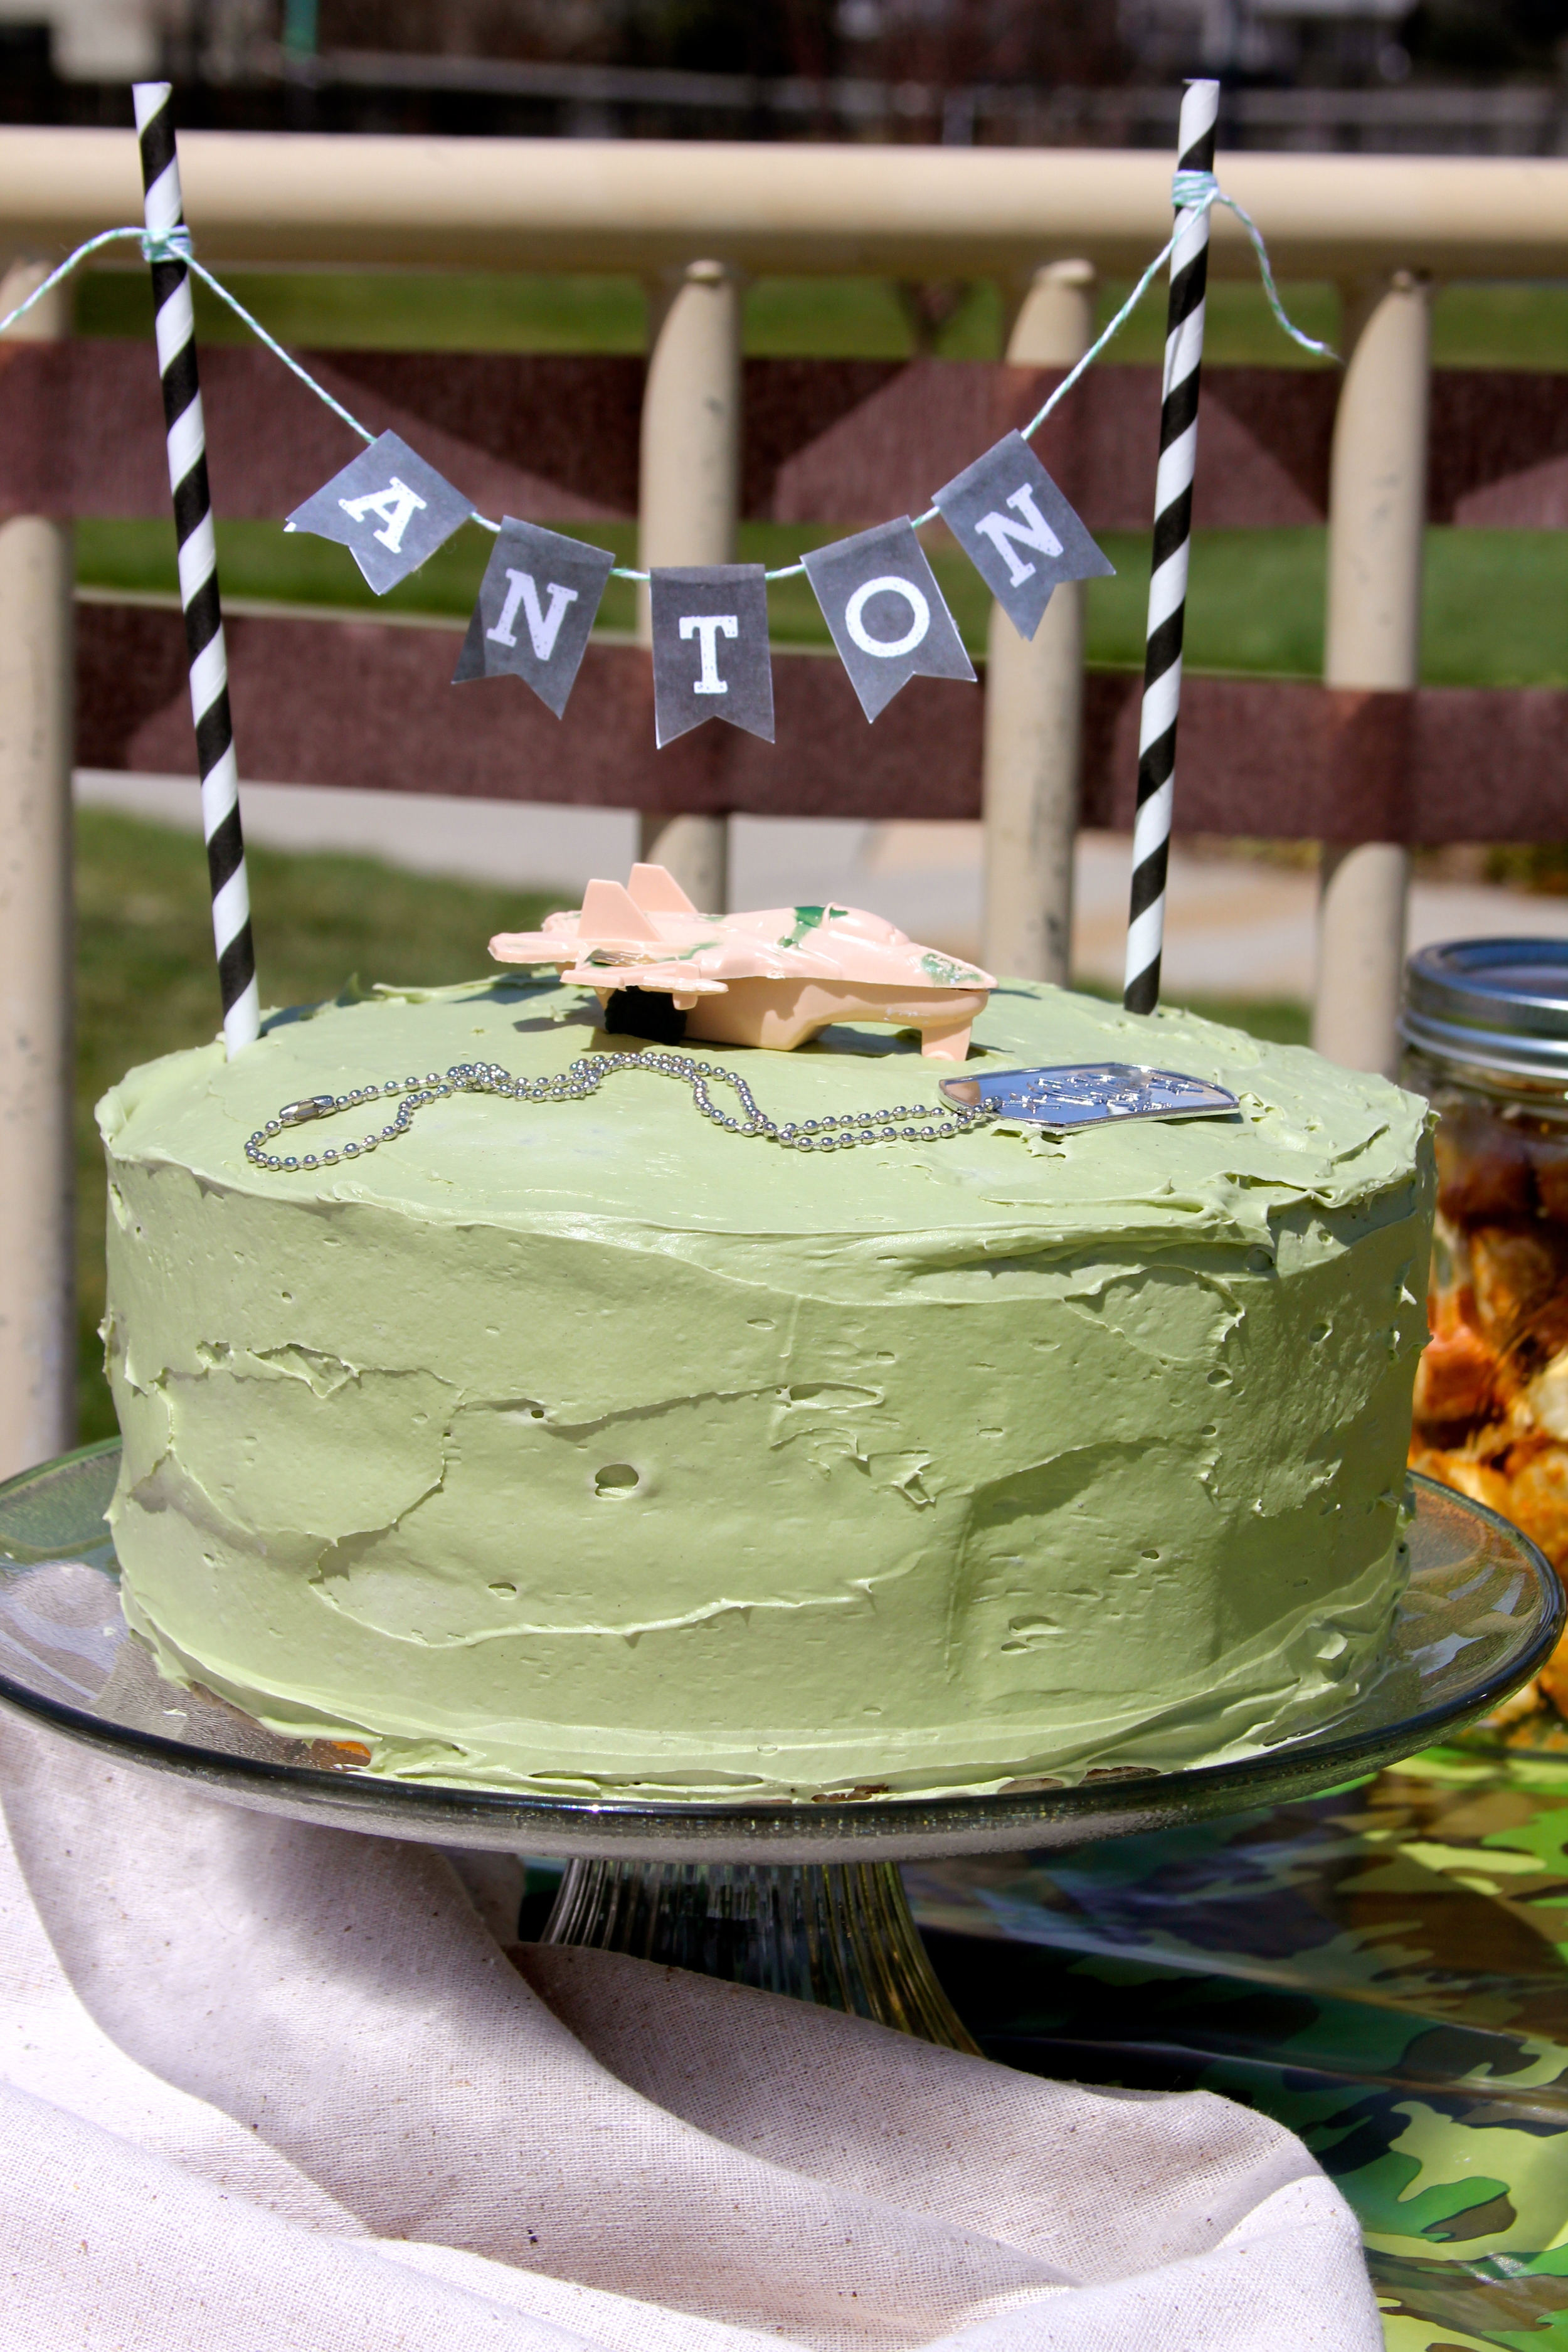 Making A Camouflage Birthday Cake Tutorial Teresa Swanstrom Anderson